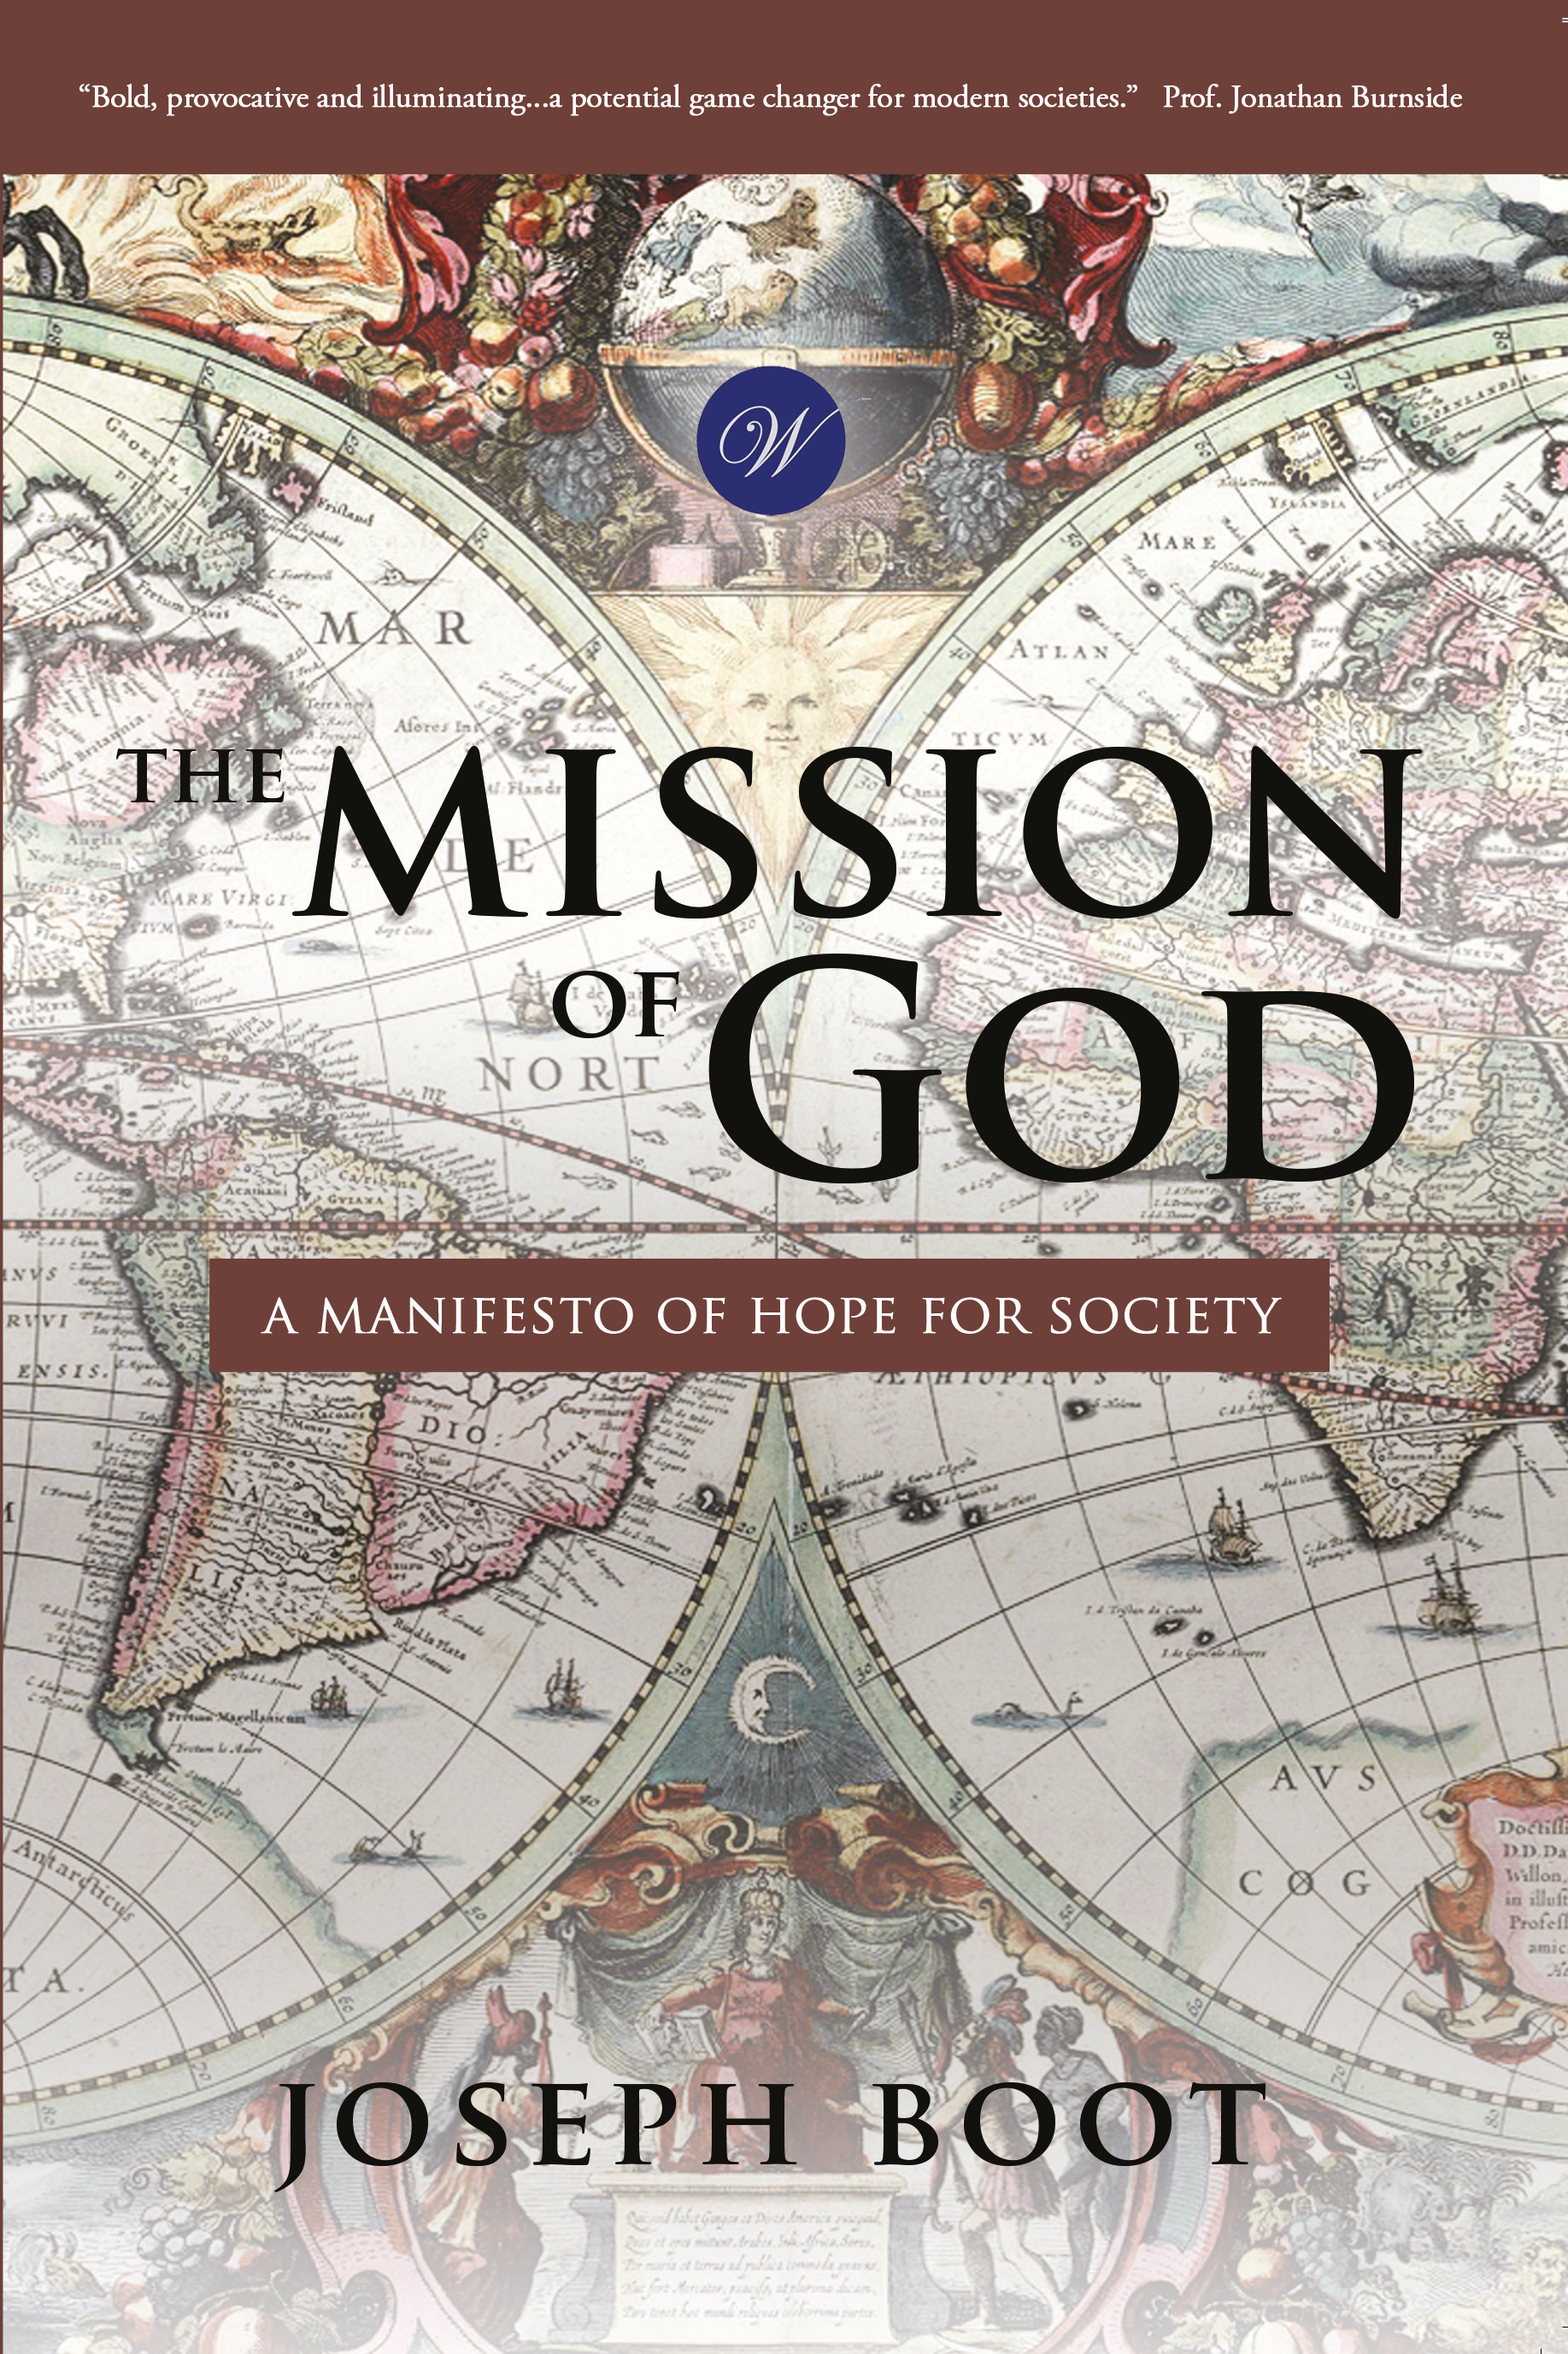 The Mission Of God - A theological masterpiece that applies the Lordship of Christ to all creation